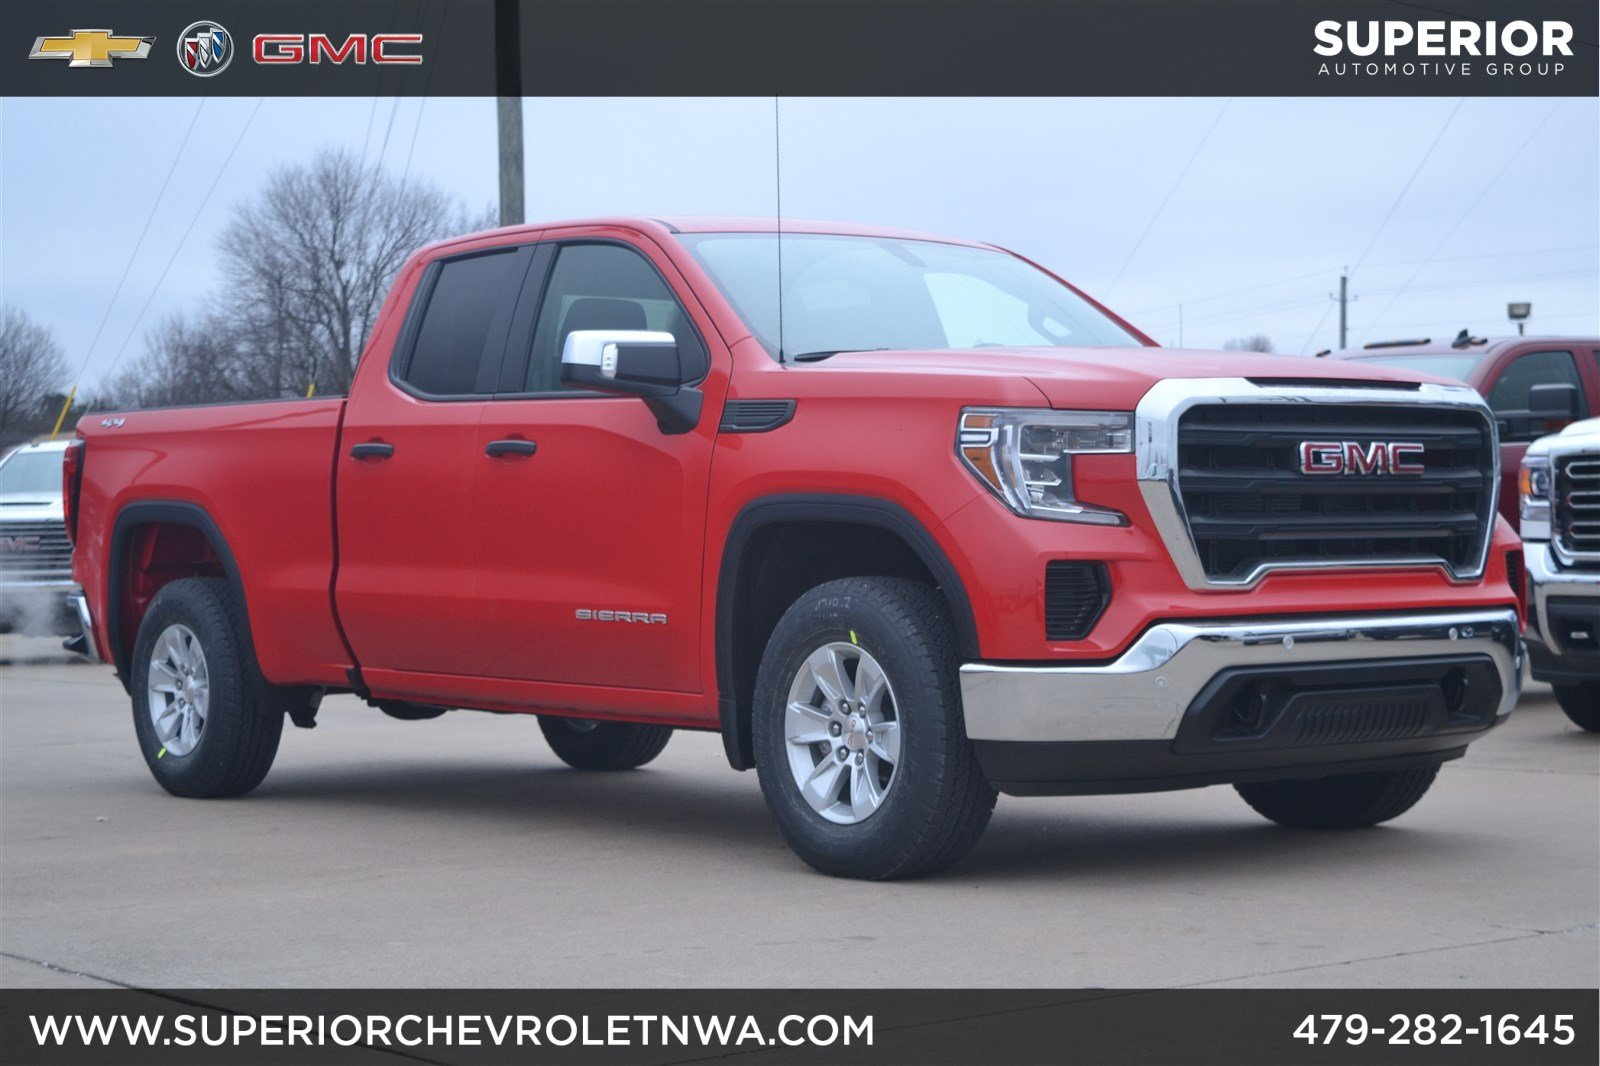 New 2019 Gmc Sierra 1500 4wd Double Cab Extended Cab Pickup In